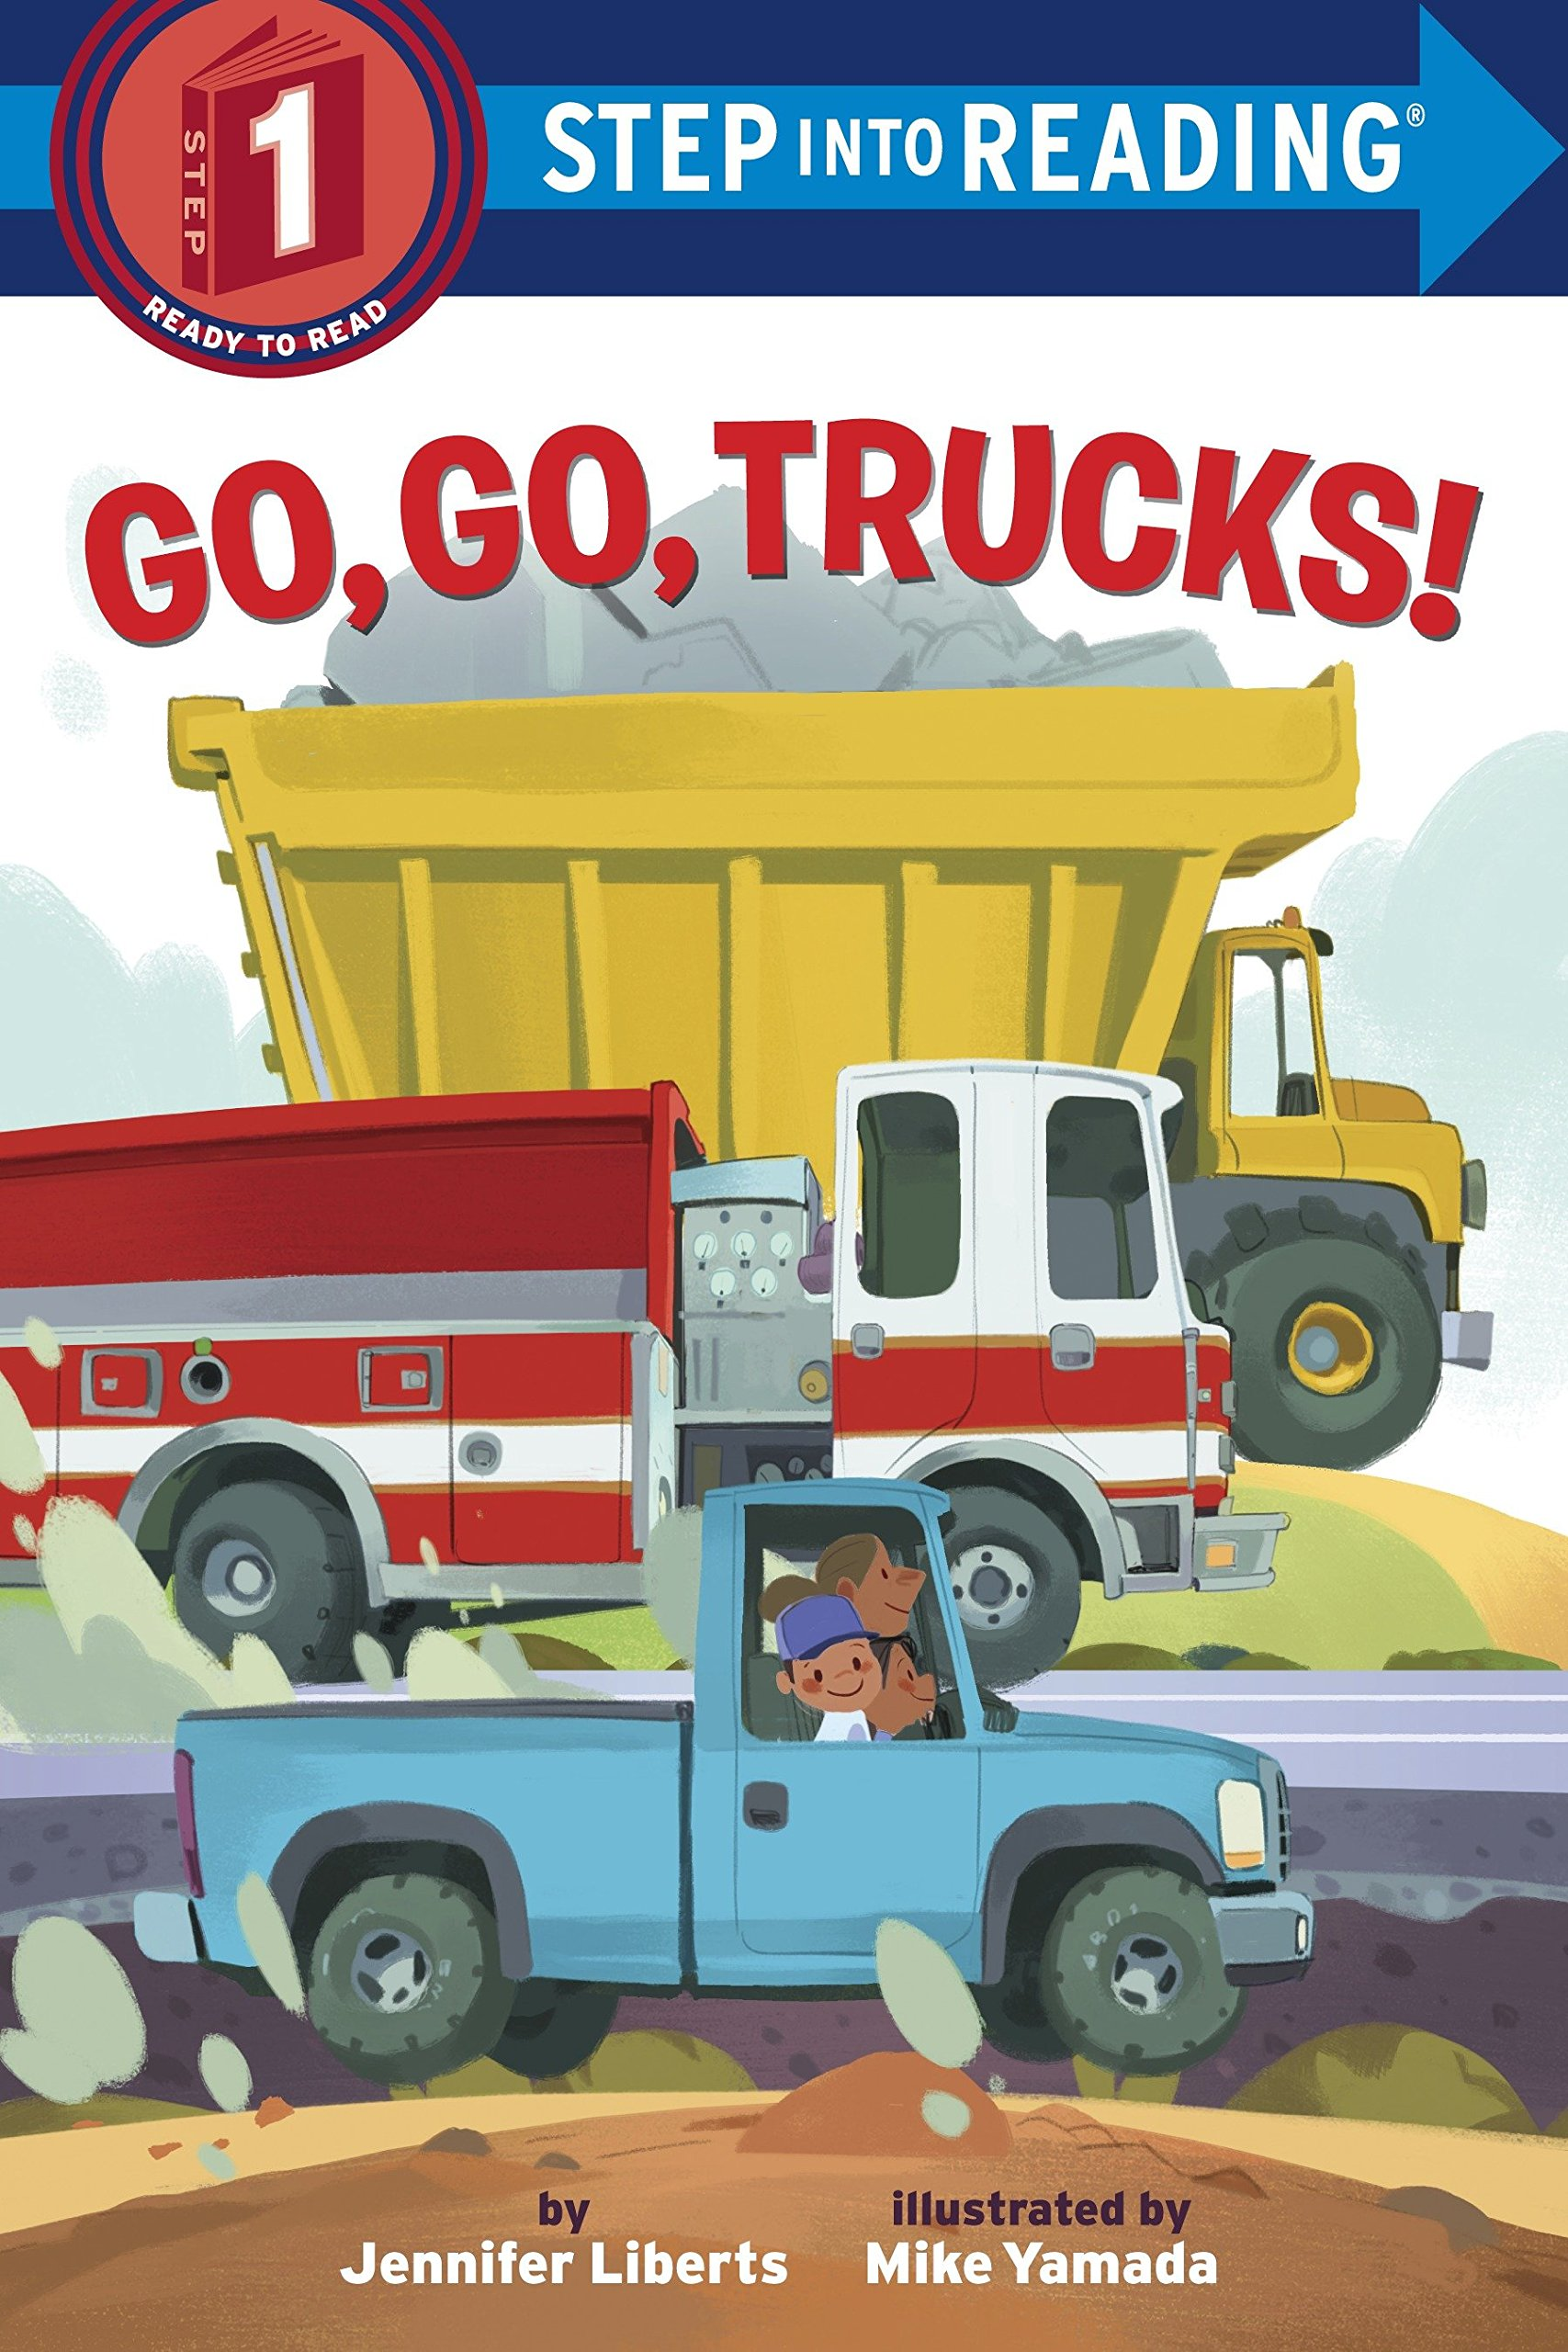 Go, Go, Trucks! (Step into Reading) Paperback – May 9, 2017 Jennifer Liberts Mike Yamada 039954951X Readers - Beginner